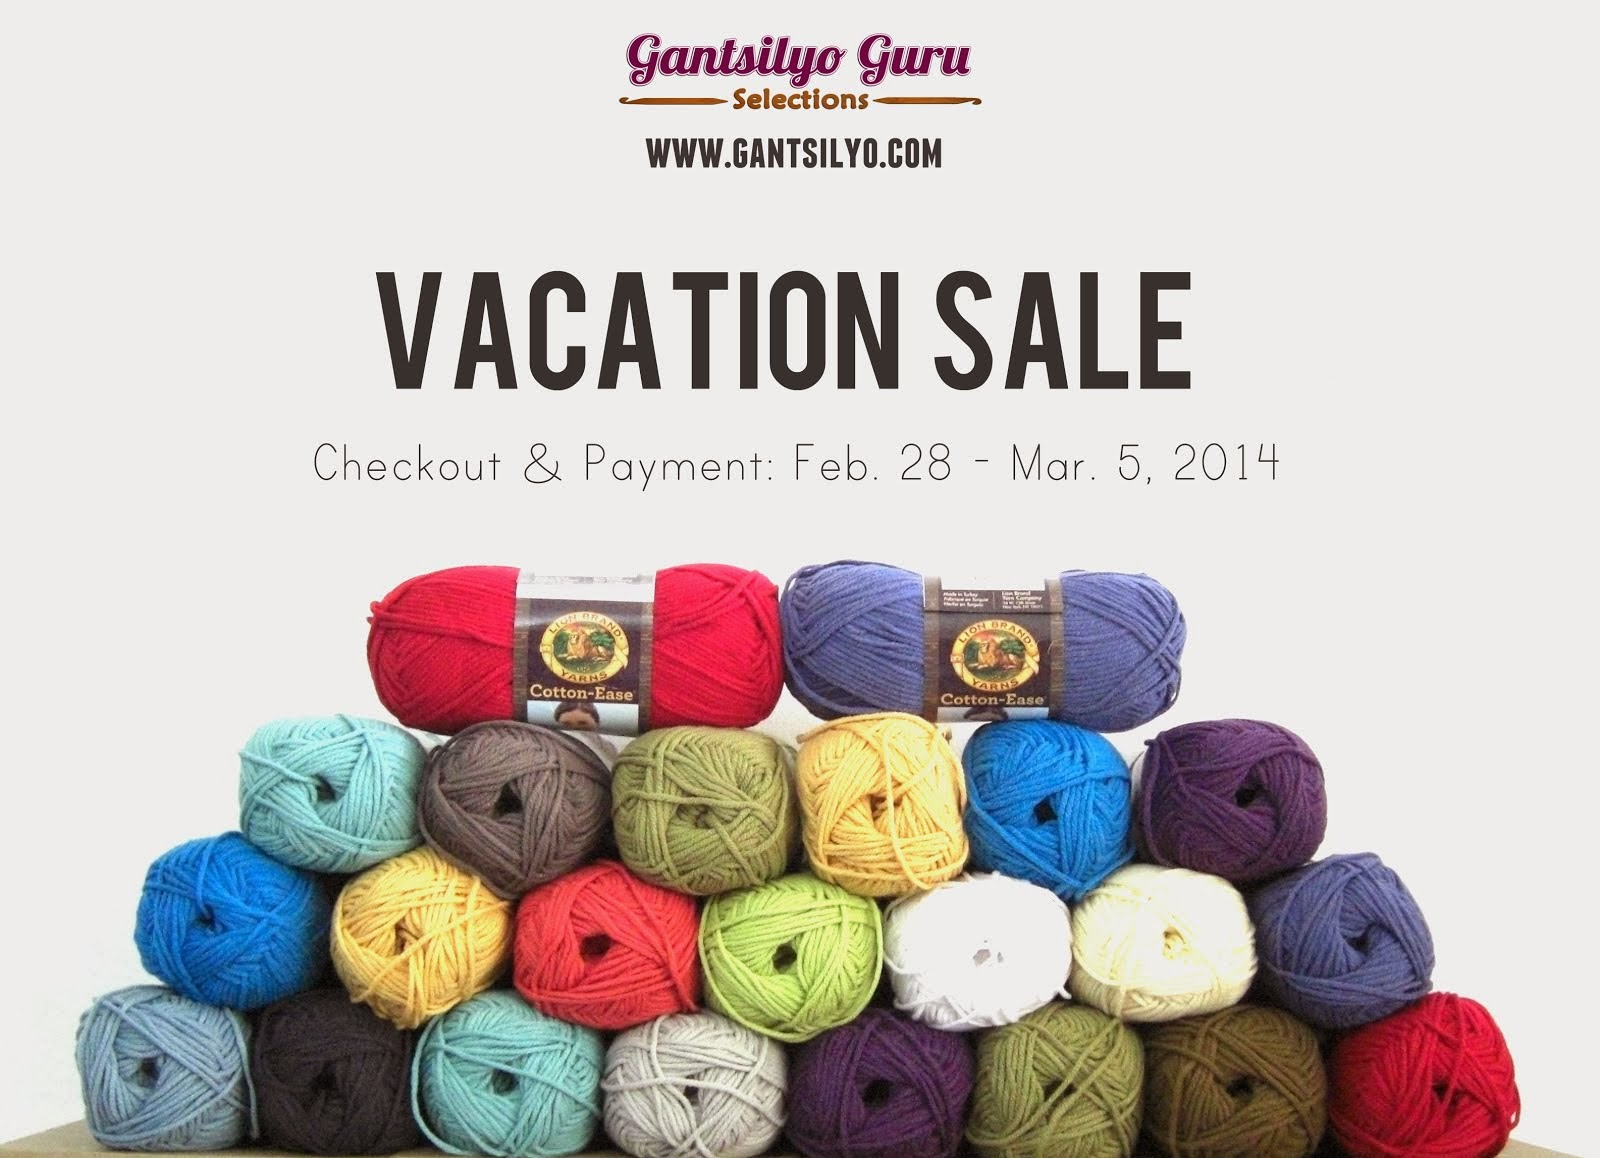 Yarn Sale from Feb. 28 to Mar. 5!